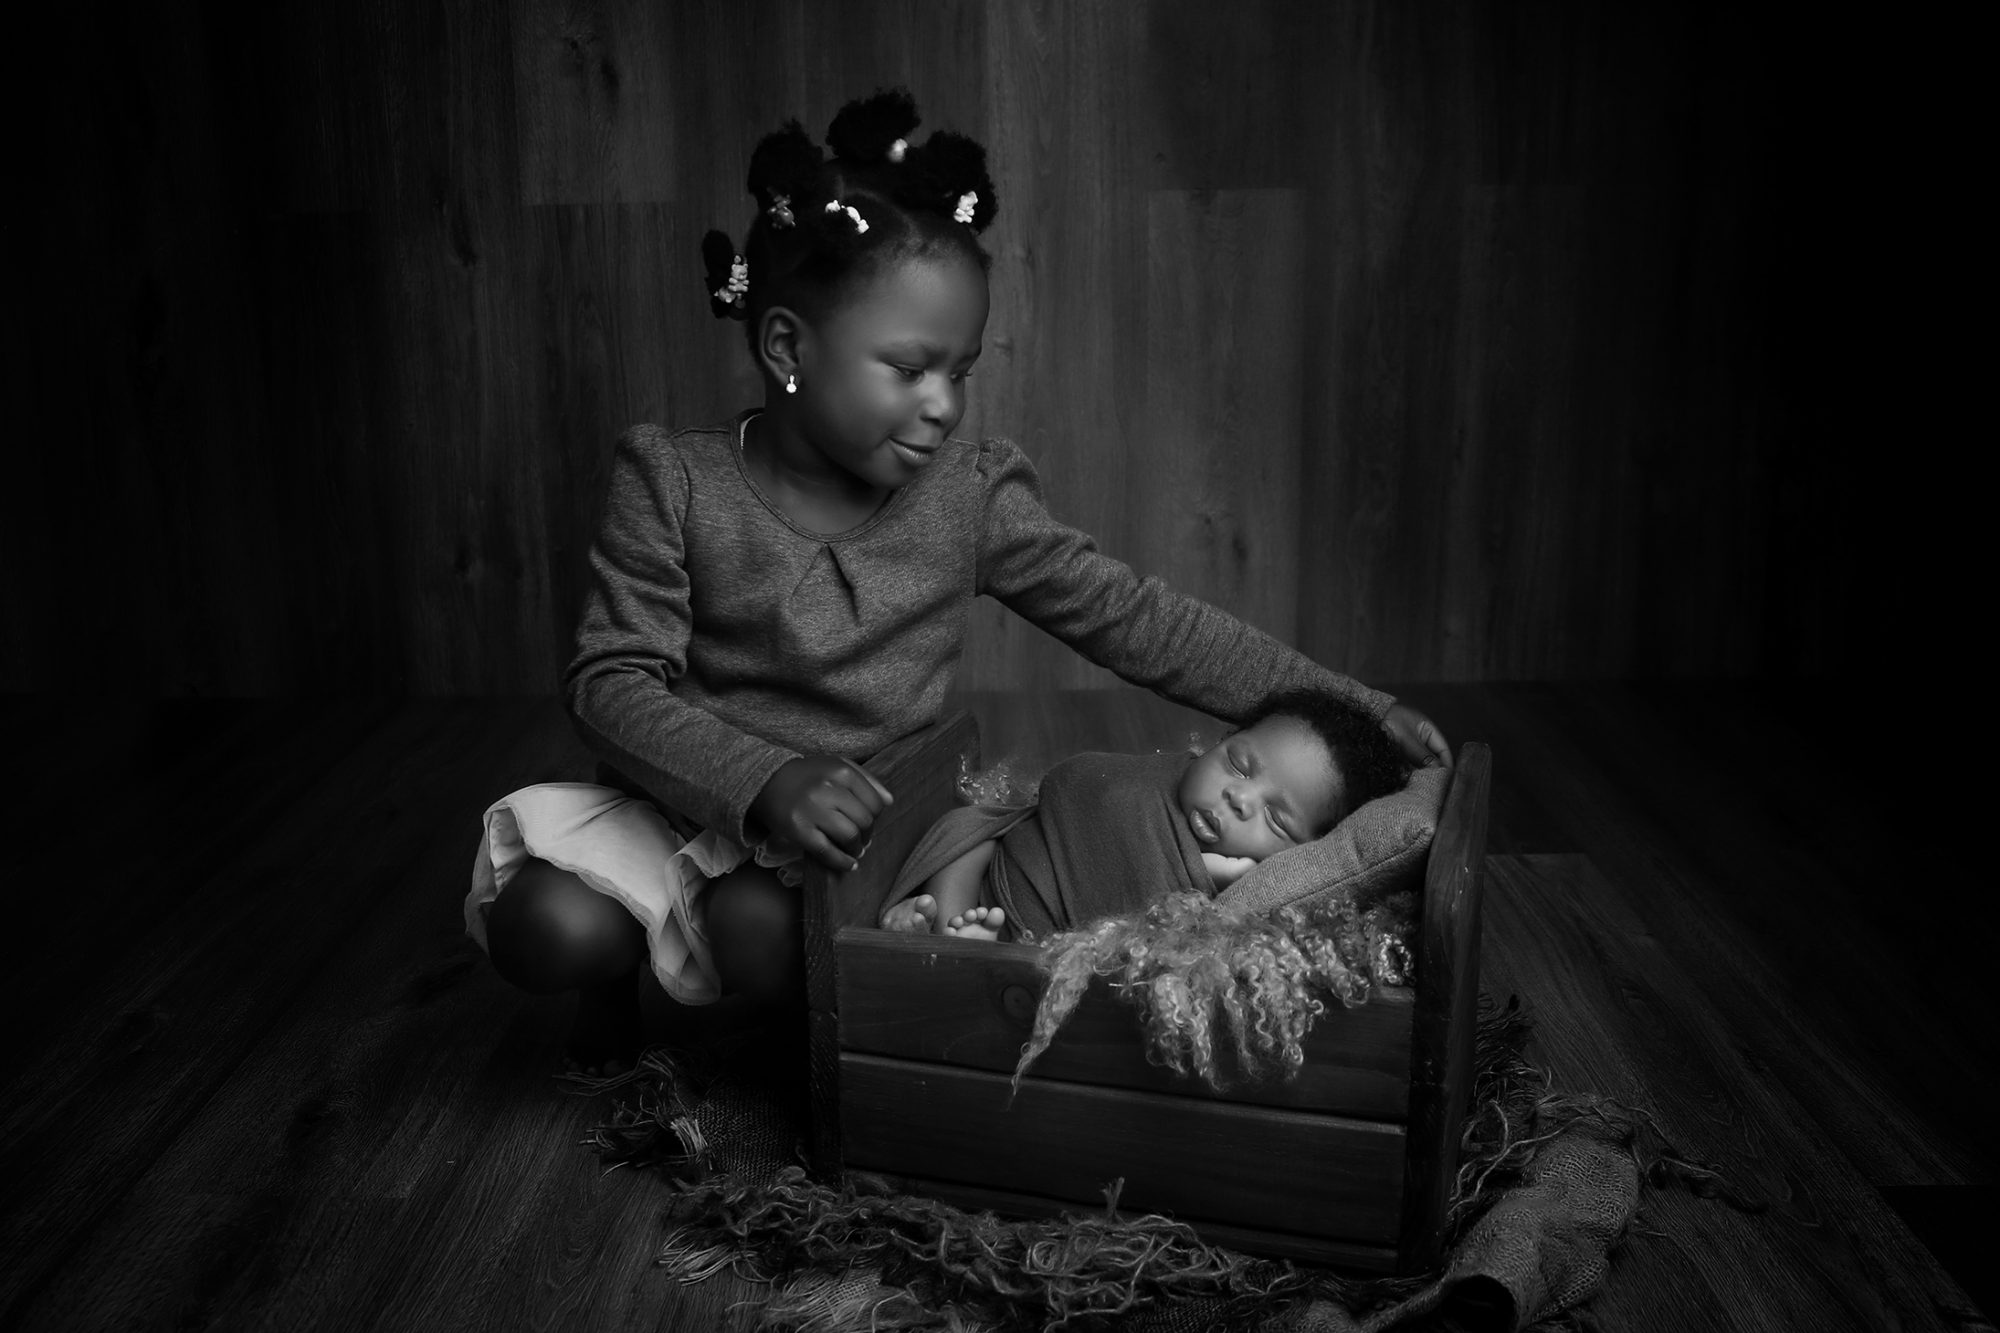 a nigerian girl sat holding onto a newborn bed while looking at her newborn baby brother